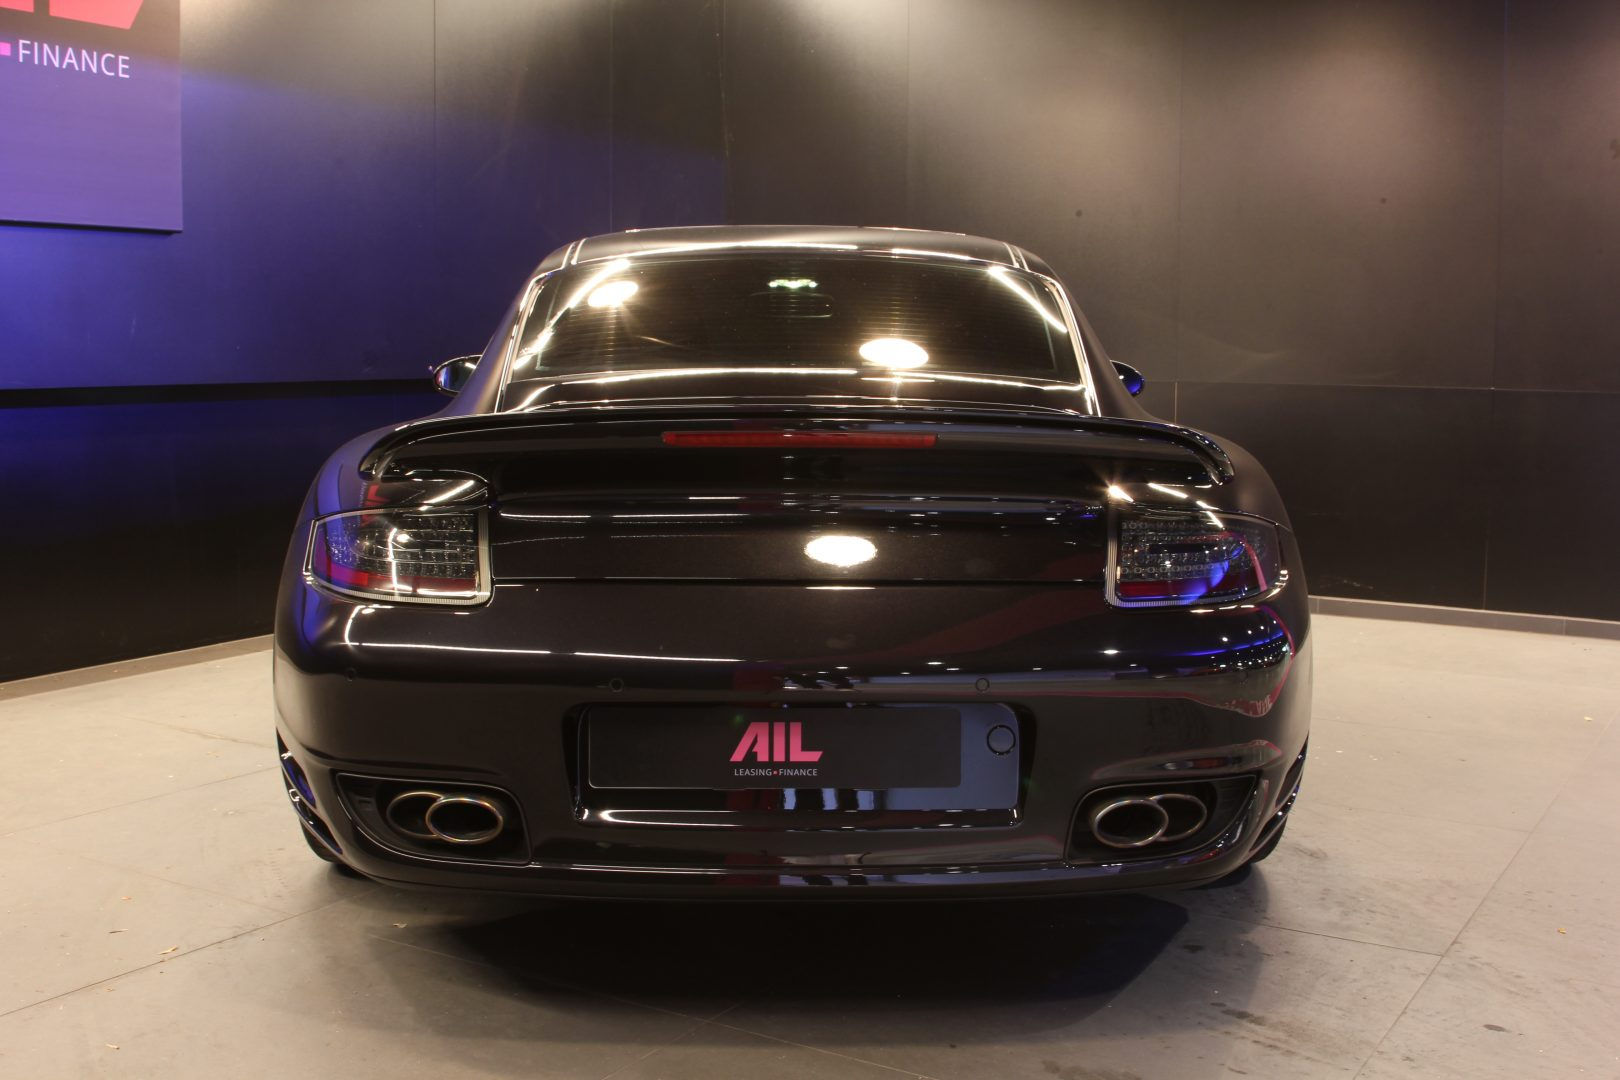 AIL Porsche 997 Turbo  8